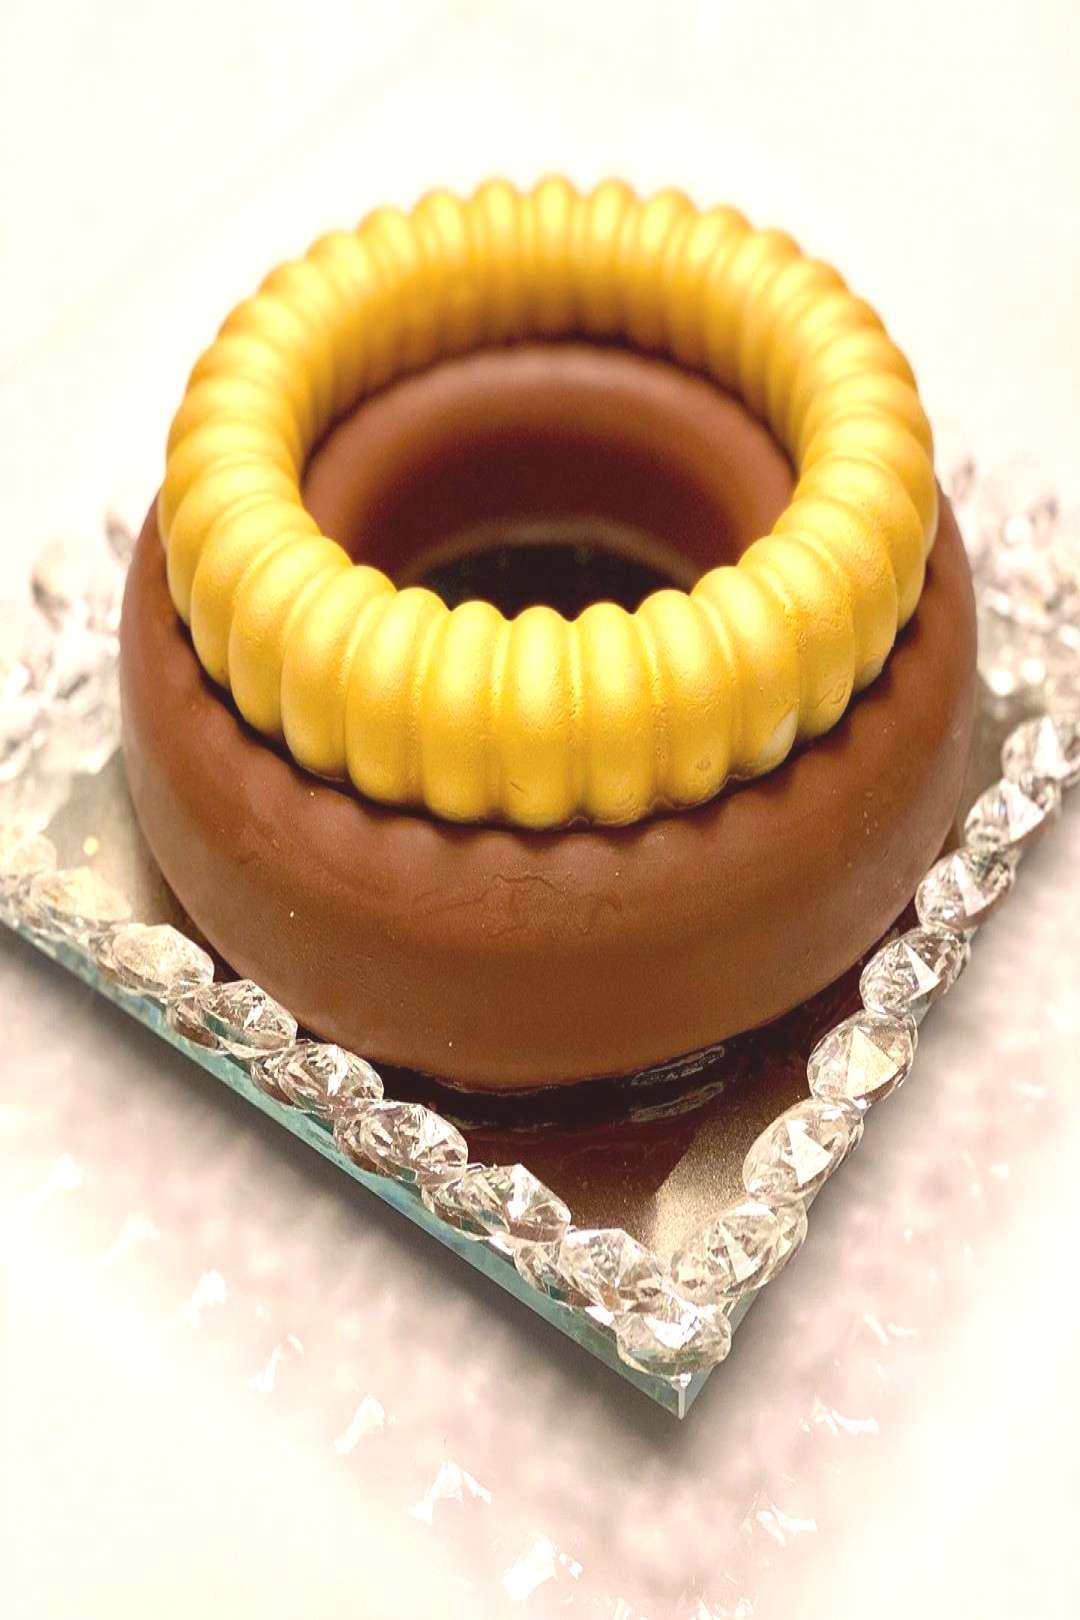 How about a bonbon cake now? You choose : - your favorite cake (